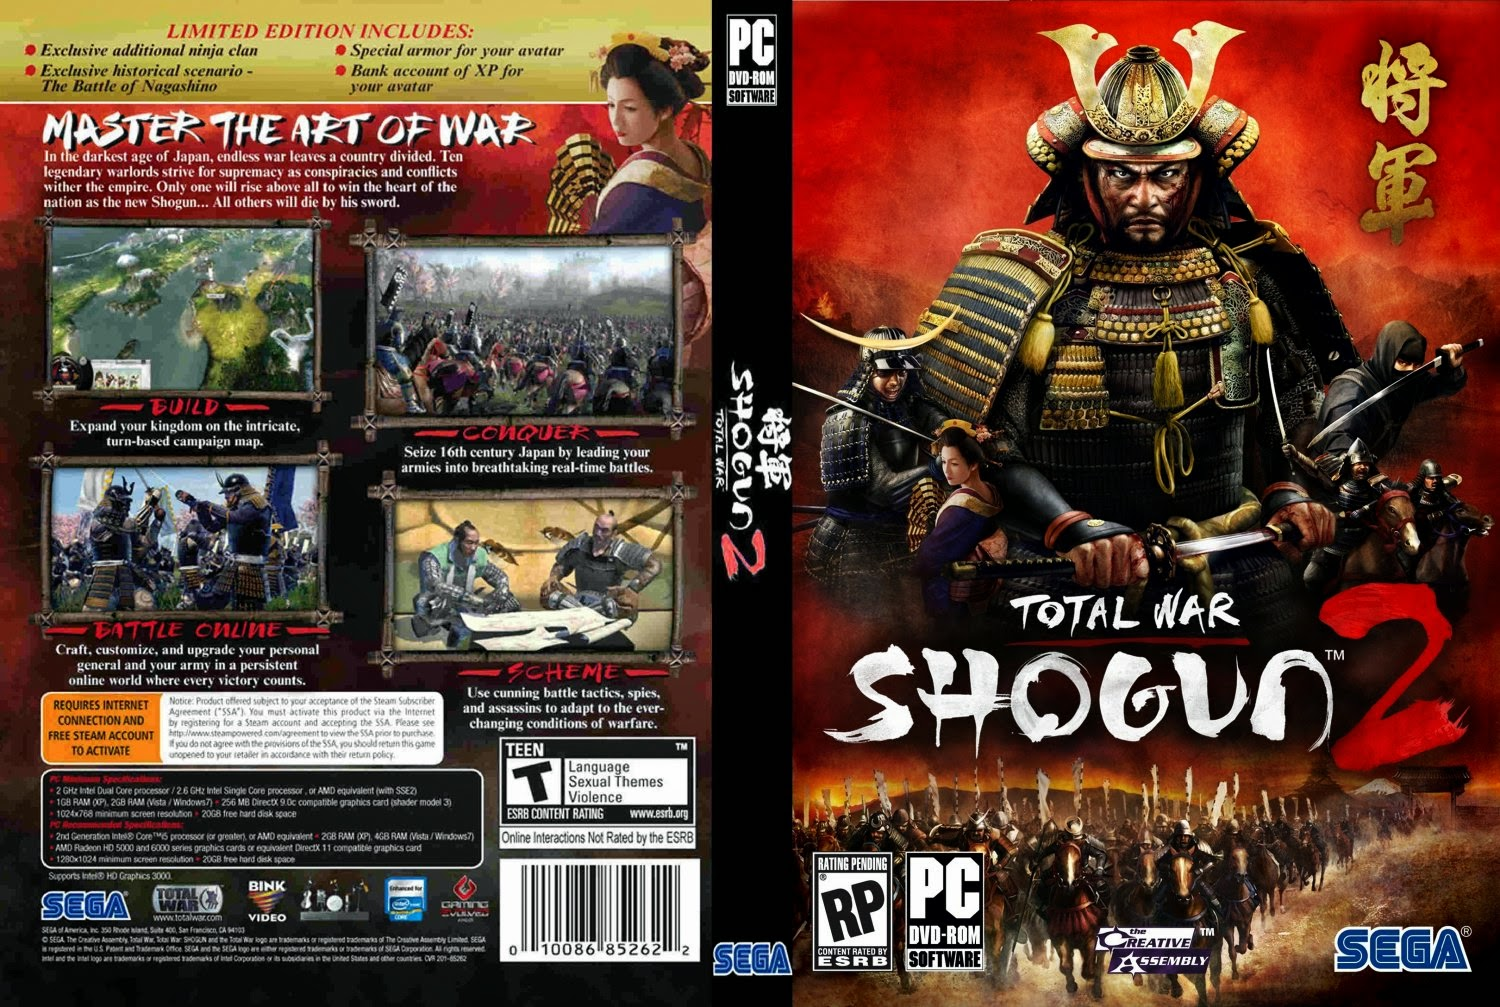 download game total war shogun 2 full version pc